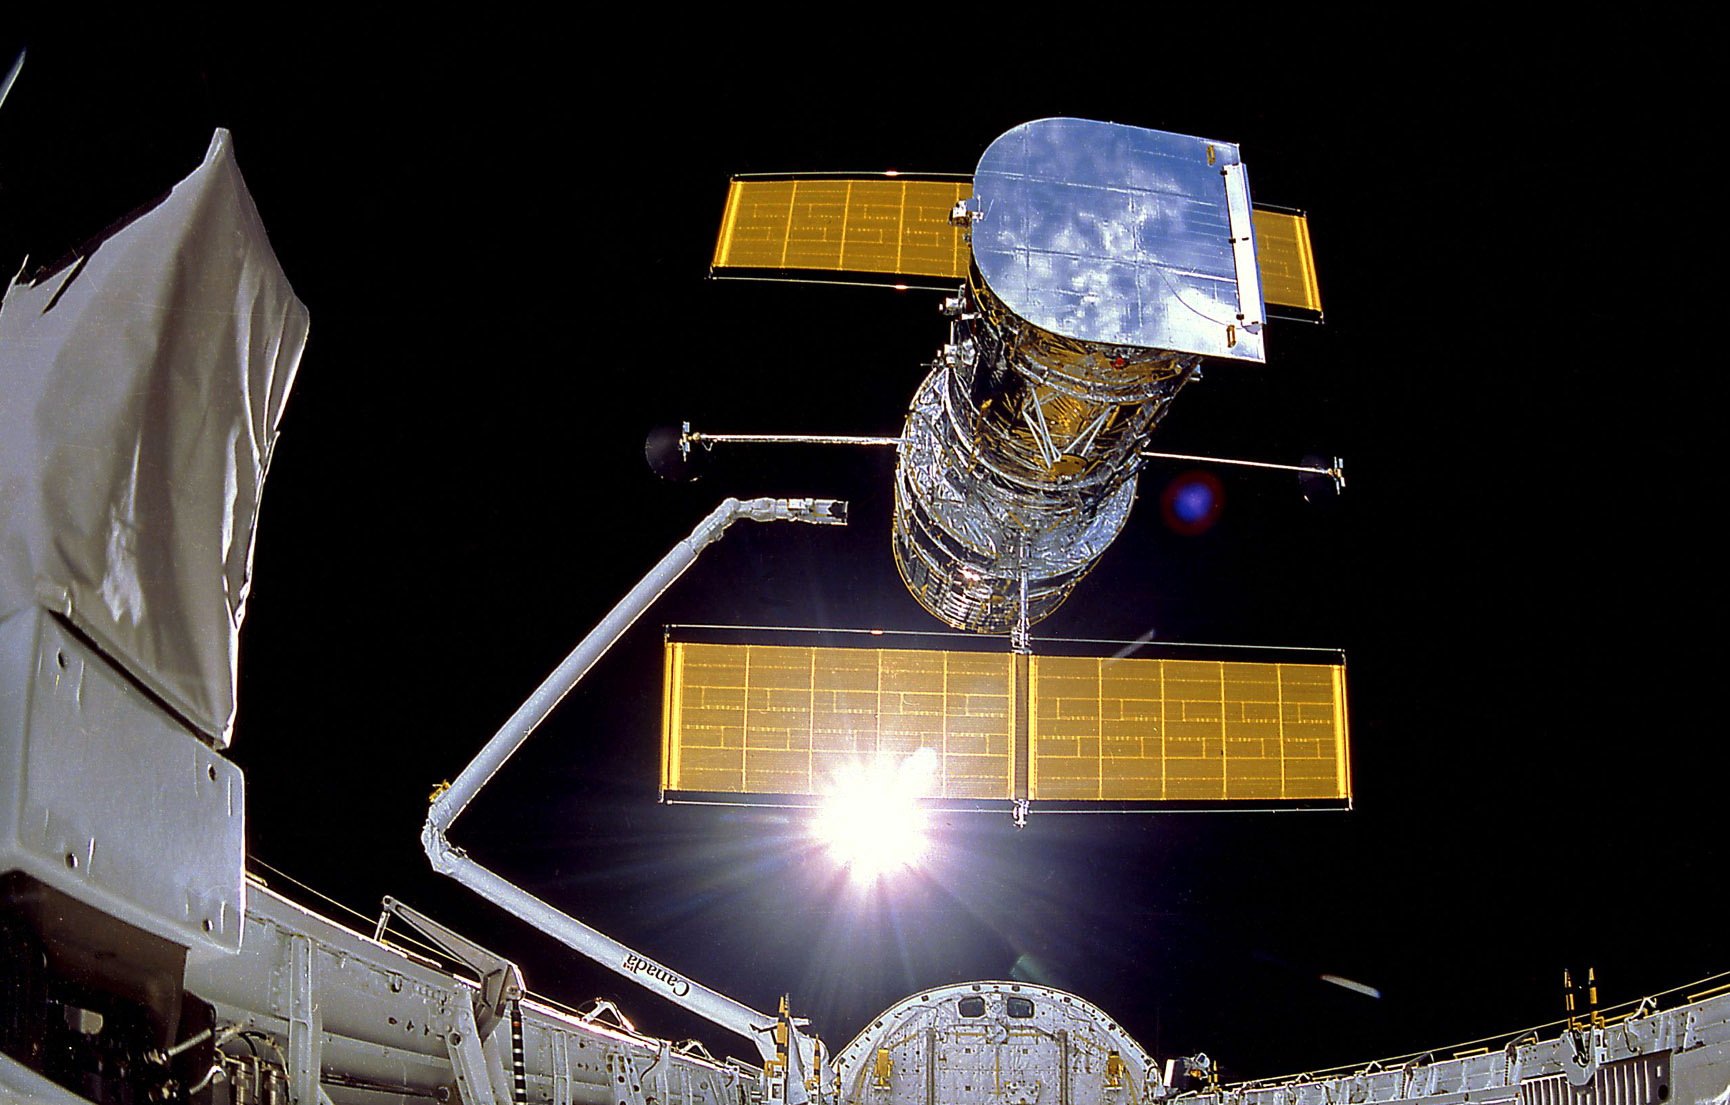 hubble deployed from discovery 1990